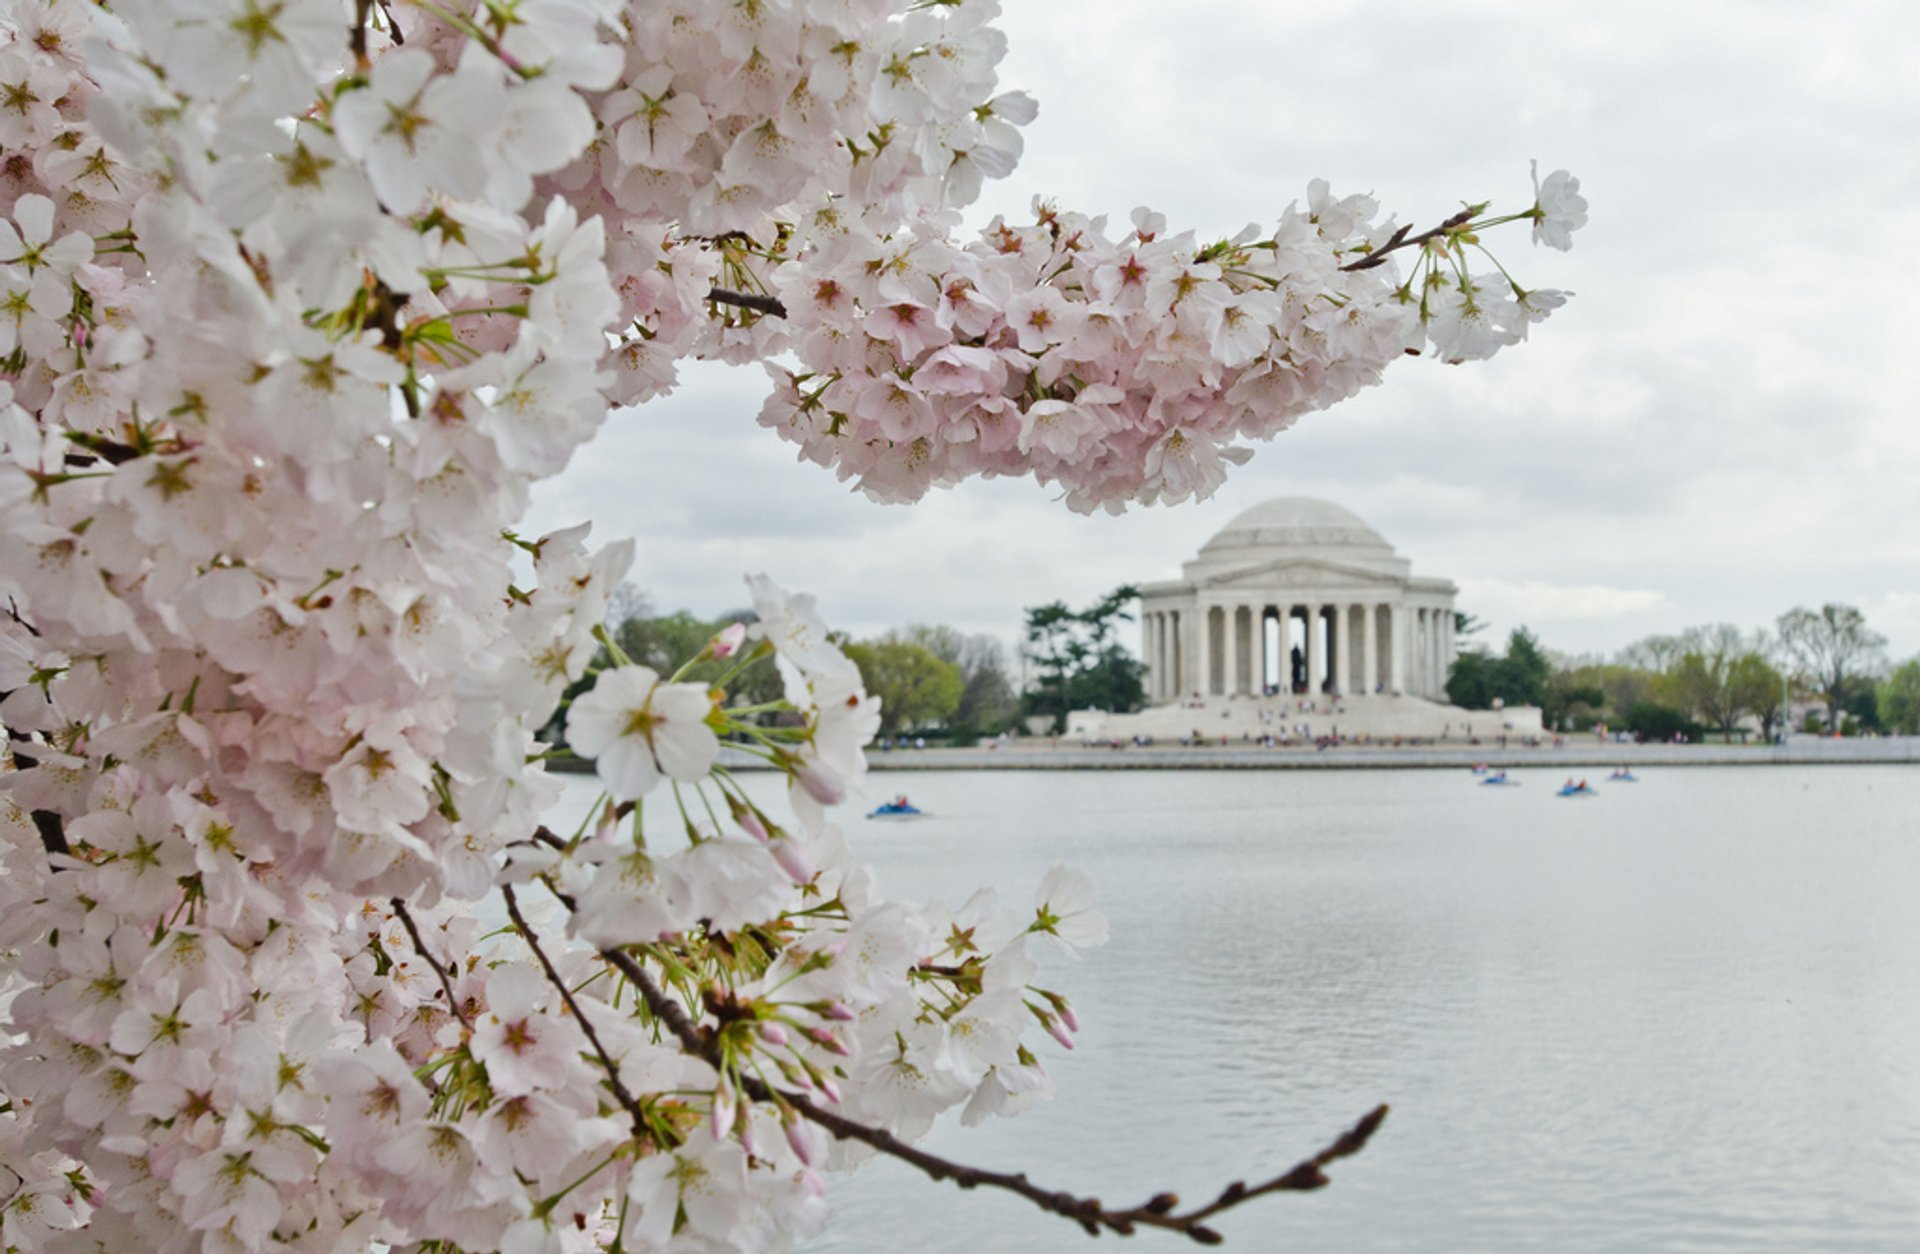 Cherry Blossoms in Washington, D.C. - Best Time